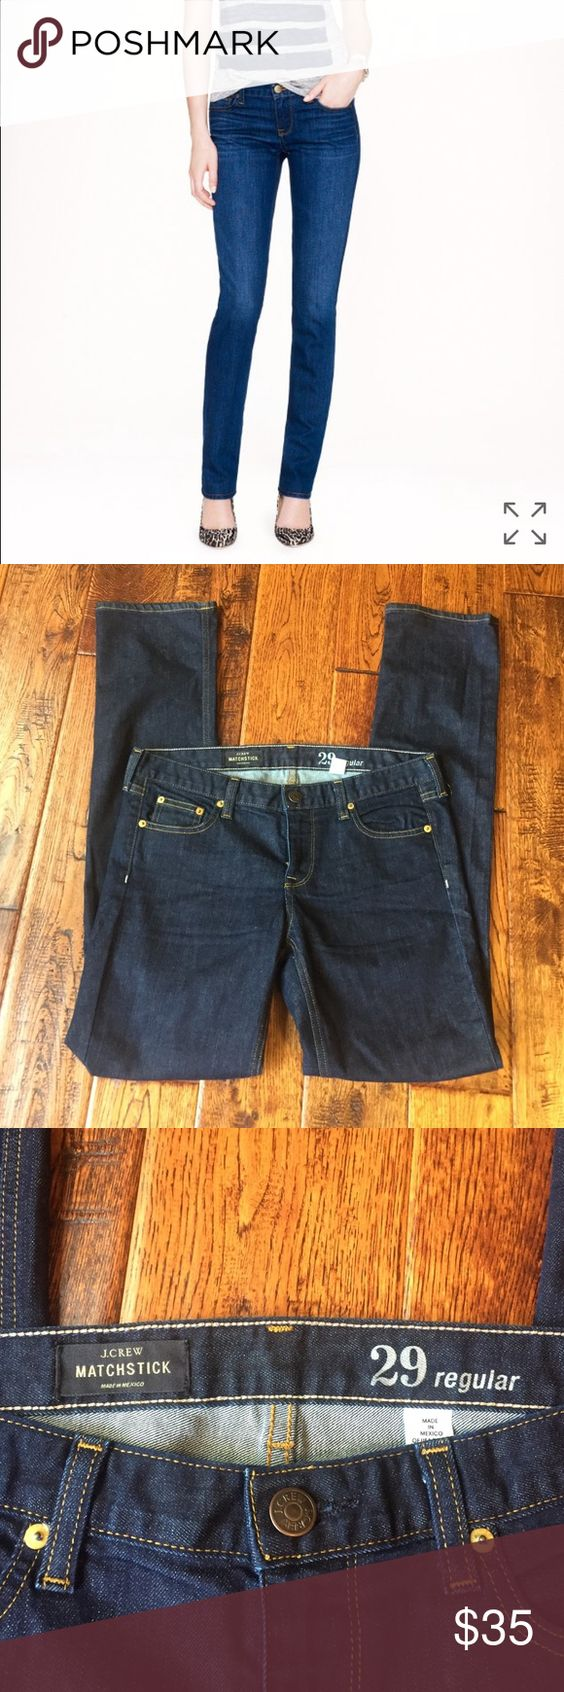 "Jcrew matchstick jeans in sutton wash Sits on hips. Slim through hip and thigh, with a slim, straight leg. 31"" inseam. Excellent condition. Barely worn J. Crew Jeans"